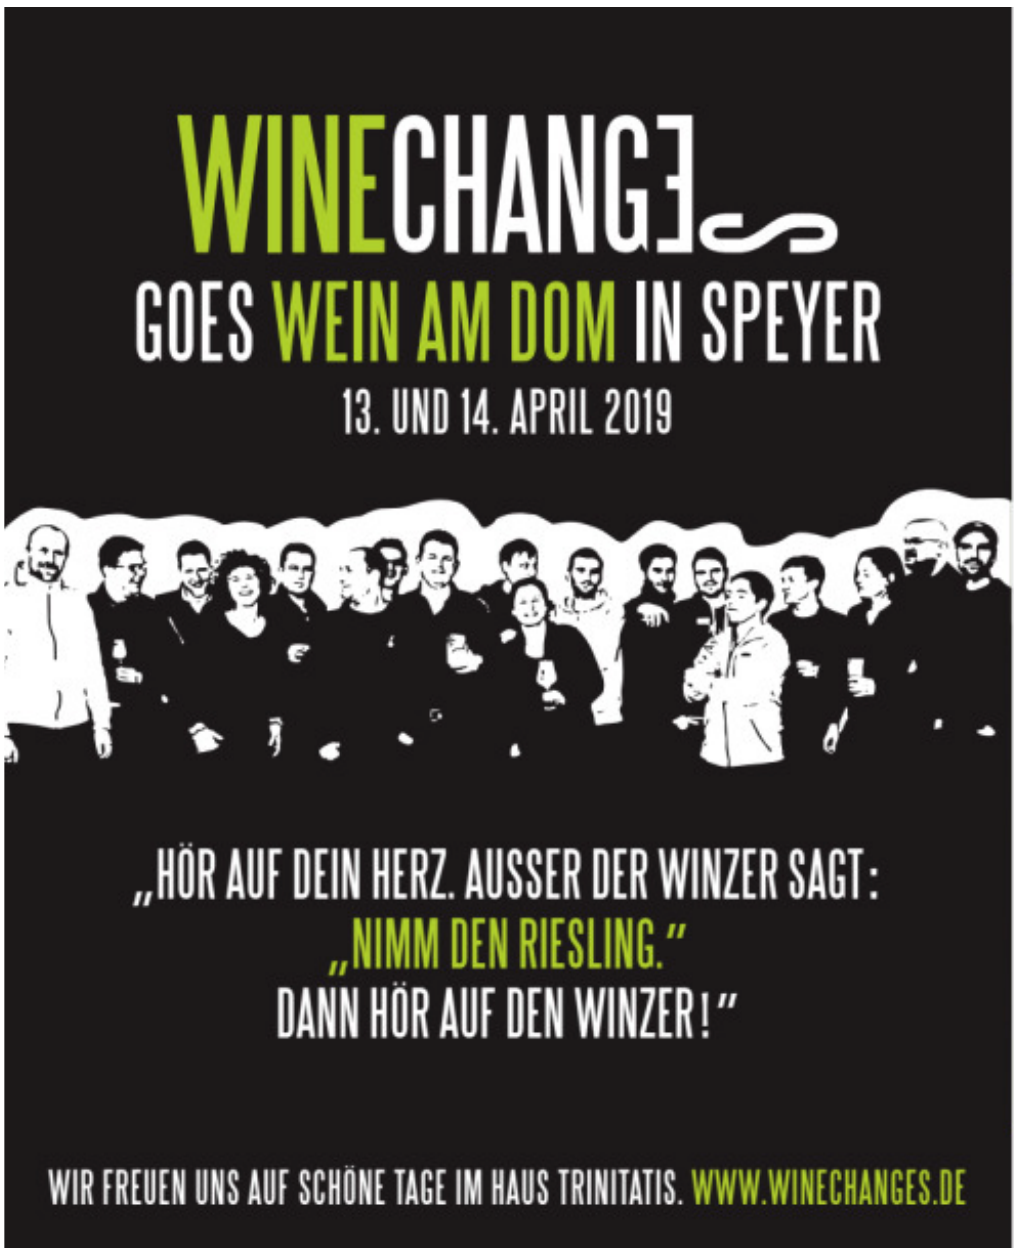 Winechanges GbR